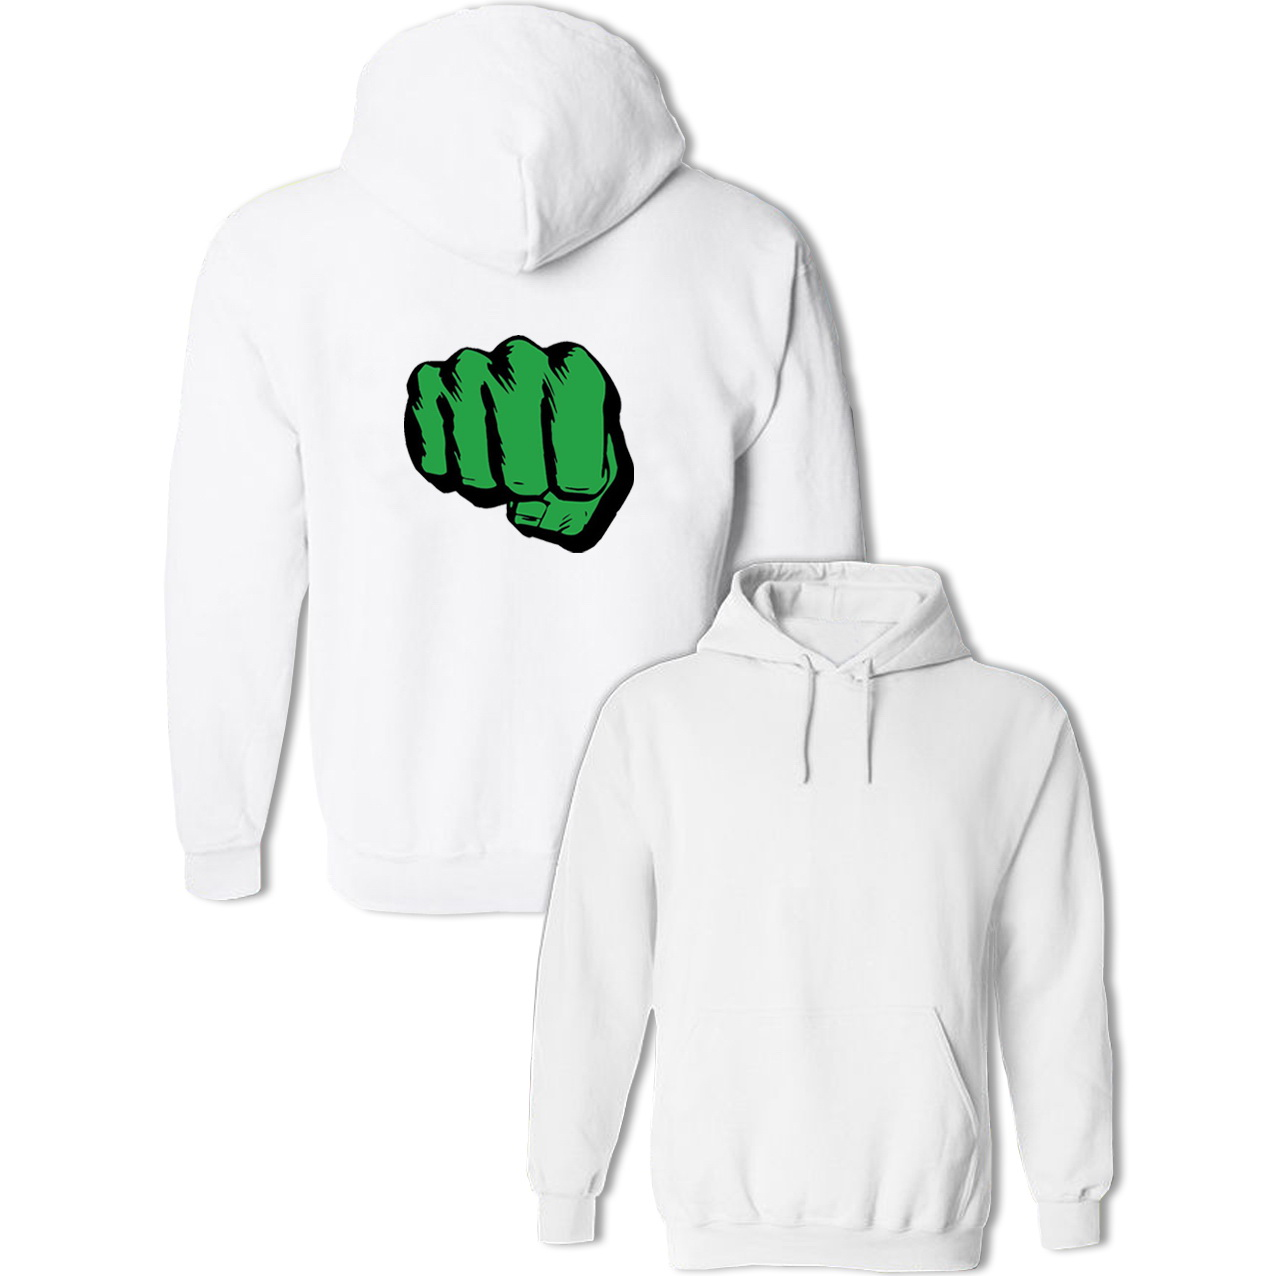 Incredible Hulk Fist Graphic Hoodie Mens Womens Boys Girls Sweatshirts Funny Design Cotton Pullovers Tops Hip Hop Jackets